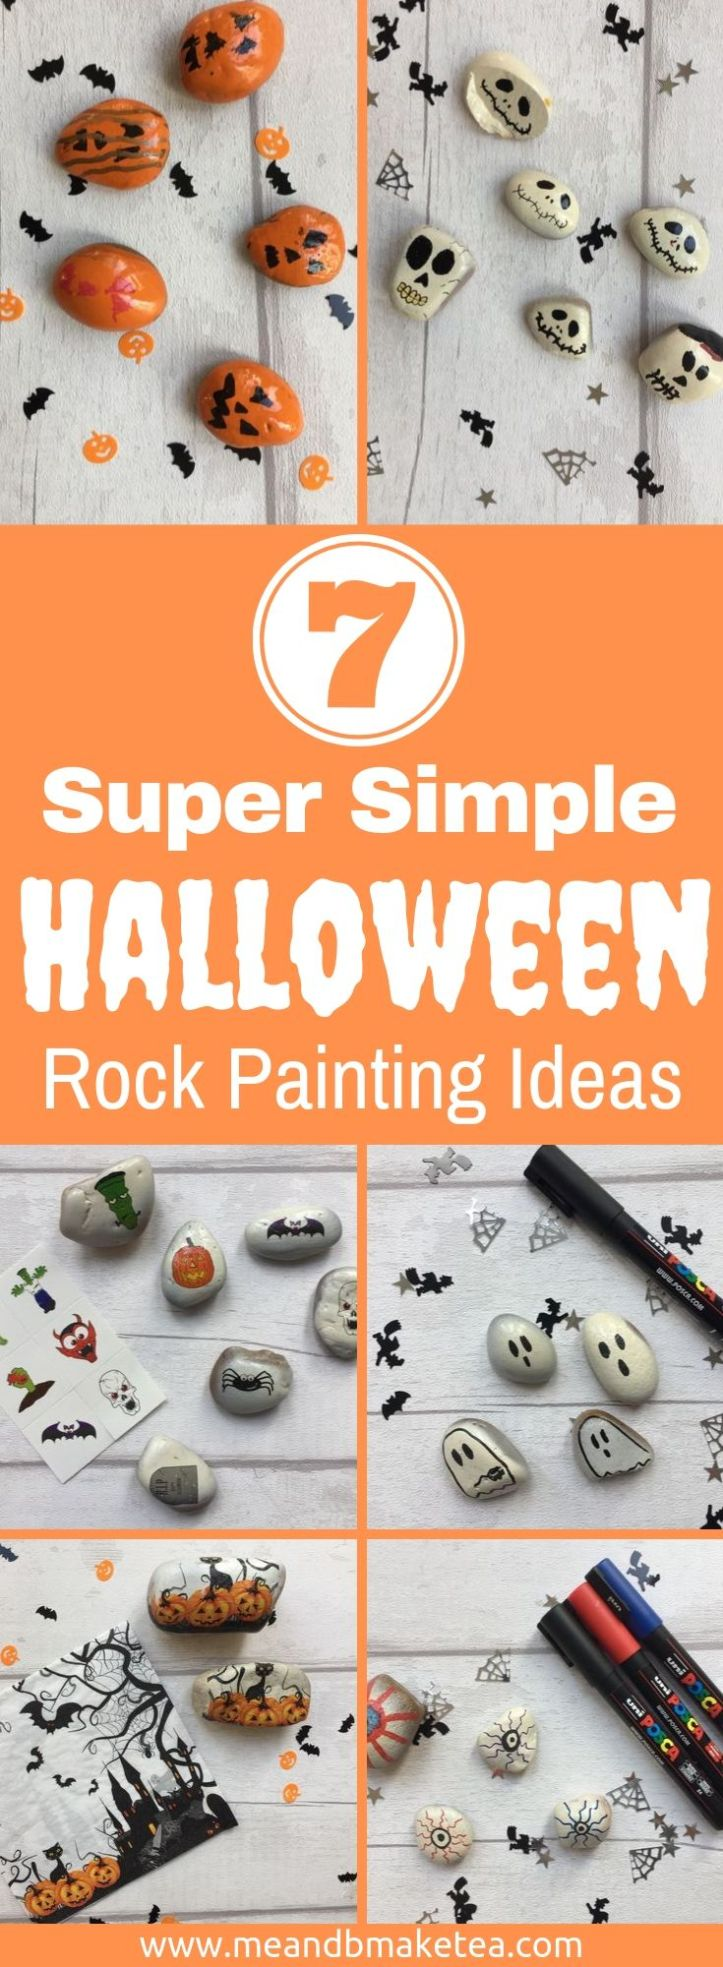 halloween-rock-painting-ideas-that-are-really-easy